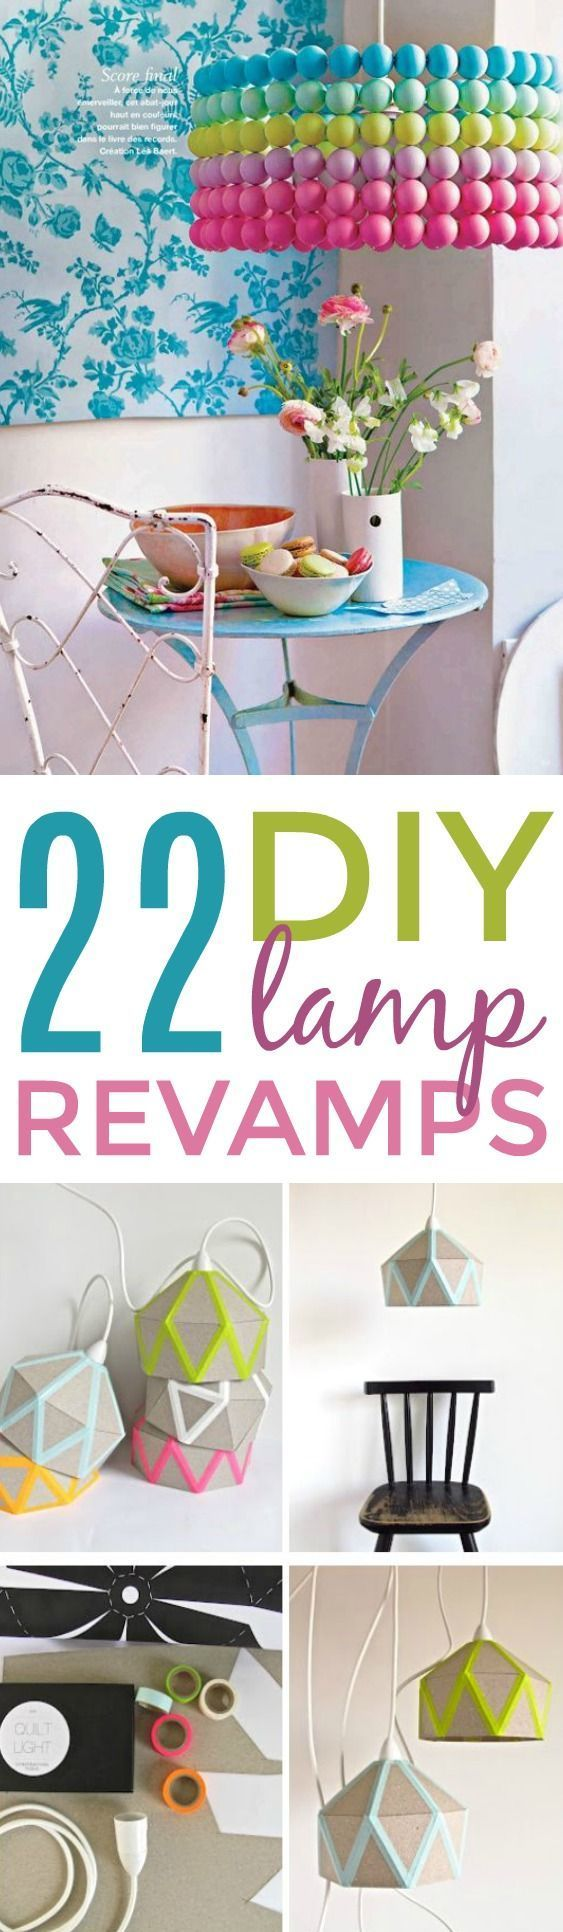 22 DIY Lamp Revamps